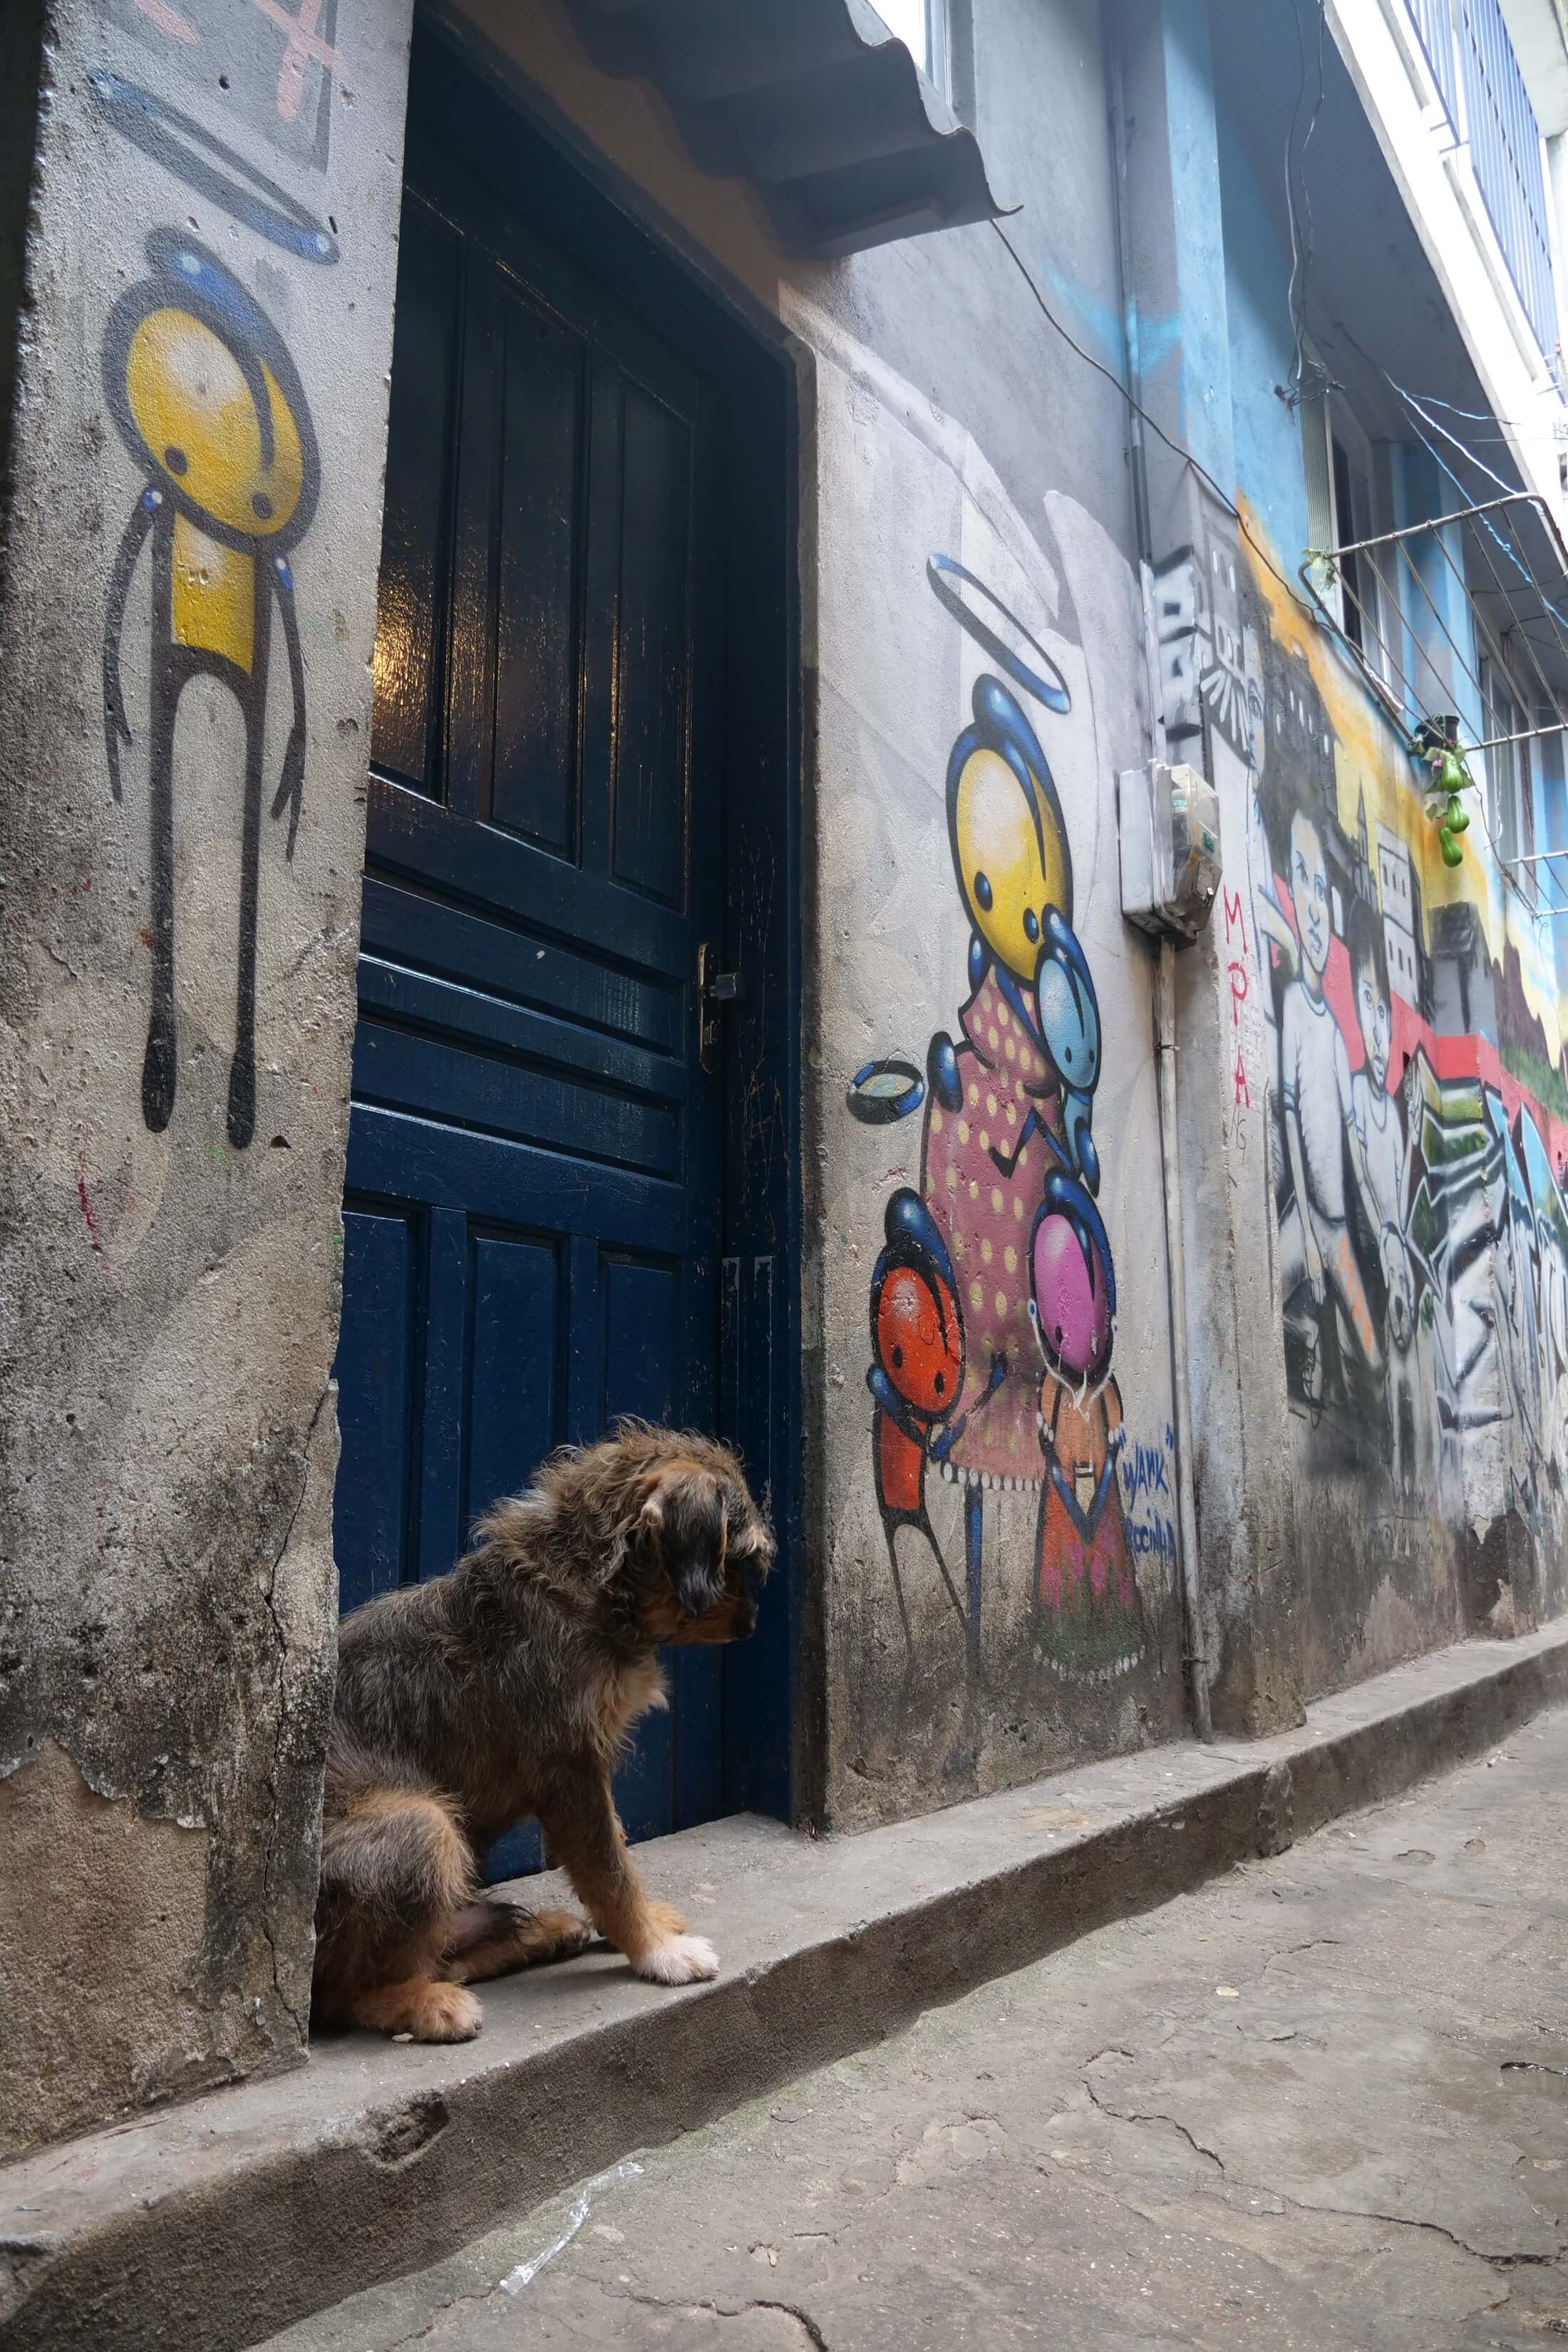 Brazils favelas are places of incredible artwork, its just bare for all to see